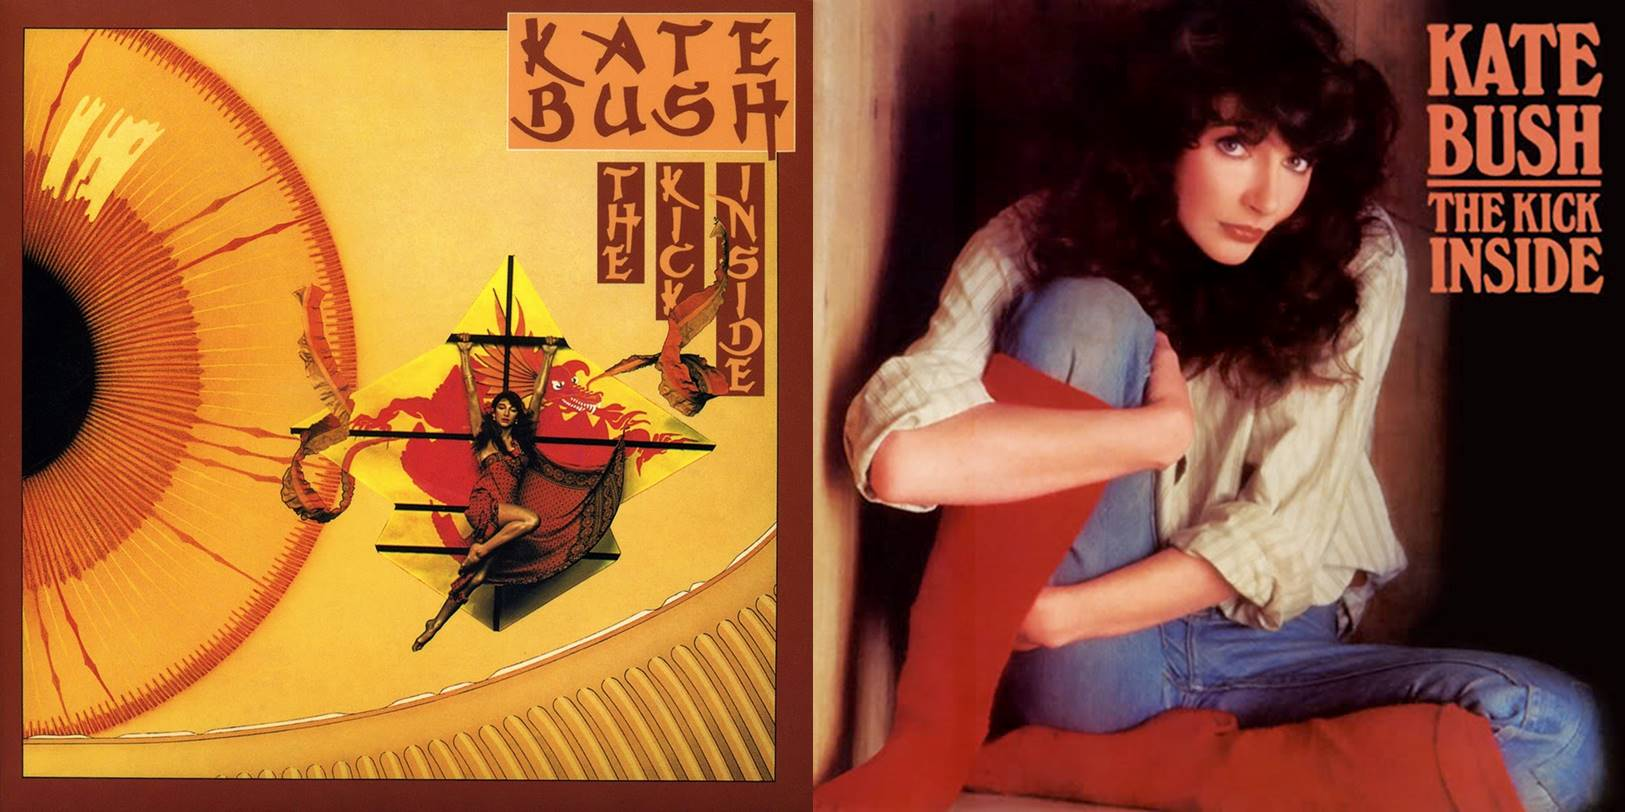 100 Most Dynamic Debut Albums: Kate Bush's 'The Kick Inside' (1978)